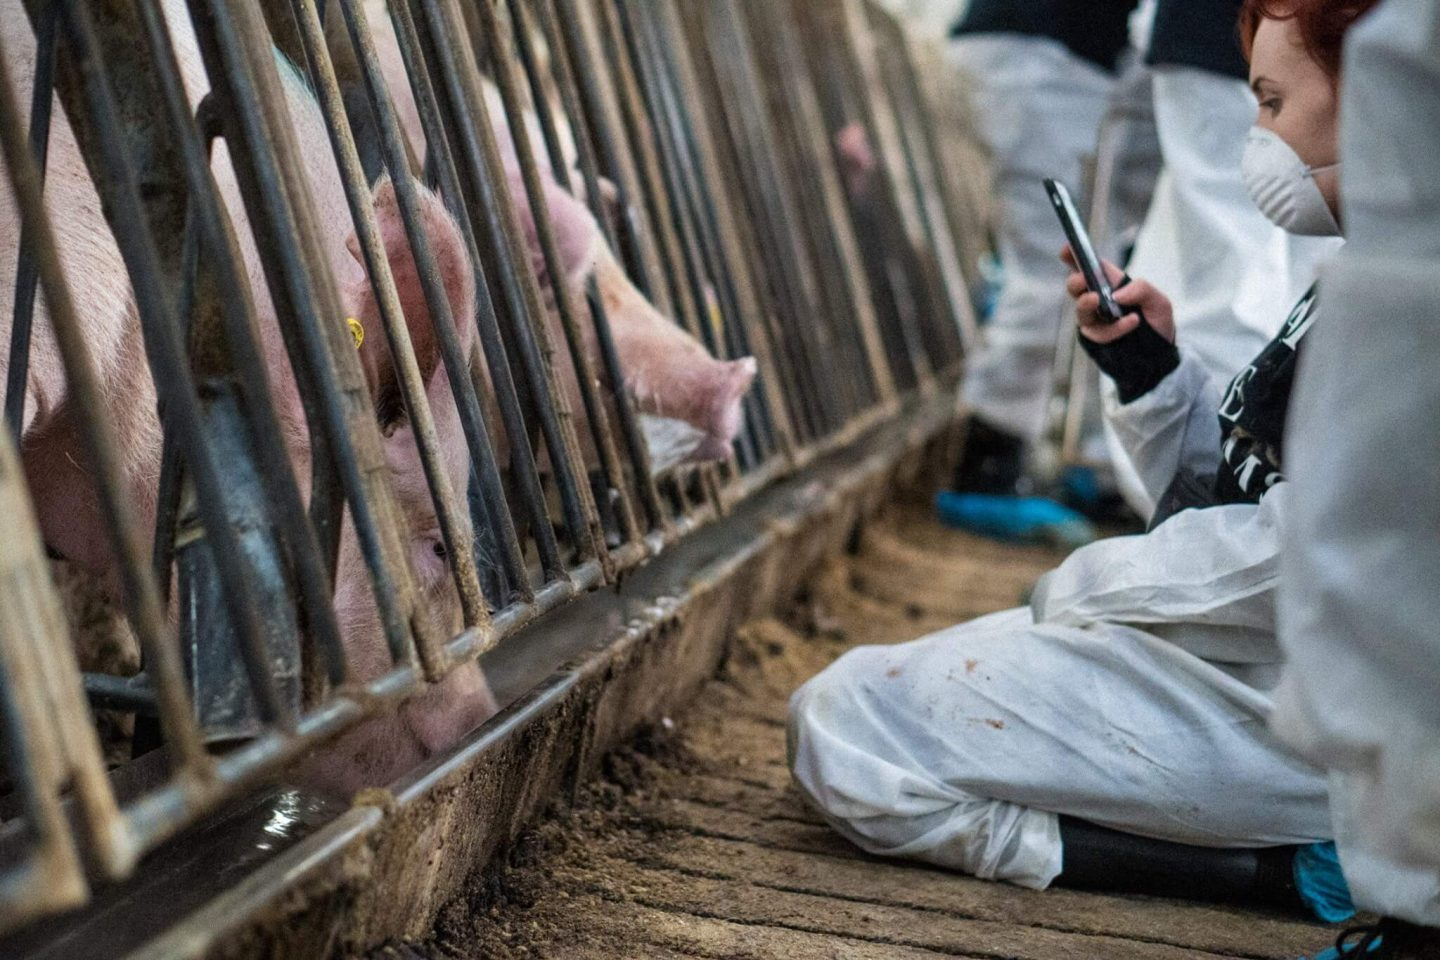 Animal Farmers Press Charges Against Activists, Cruelty